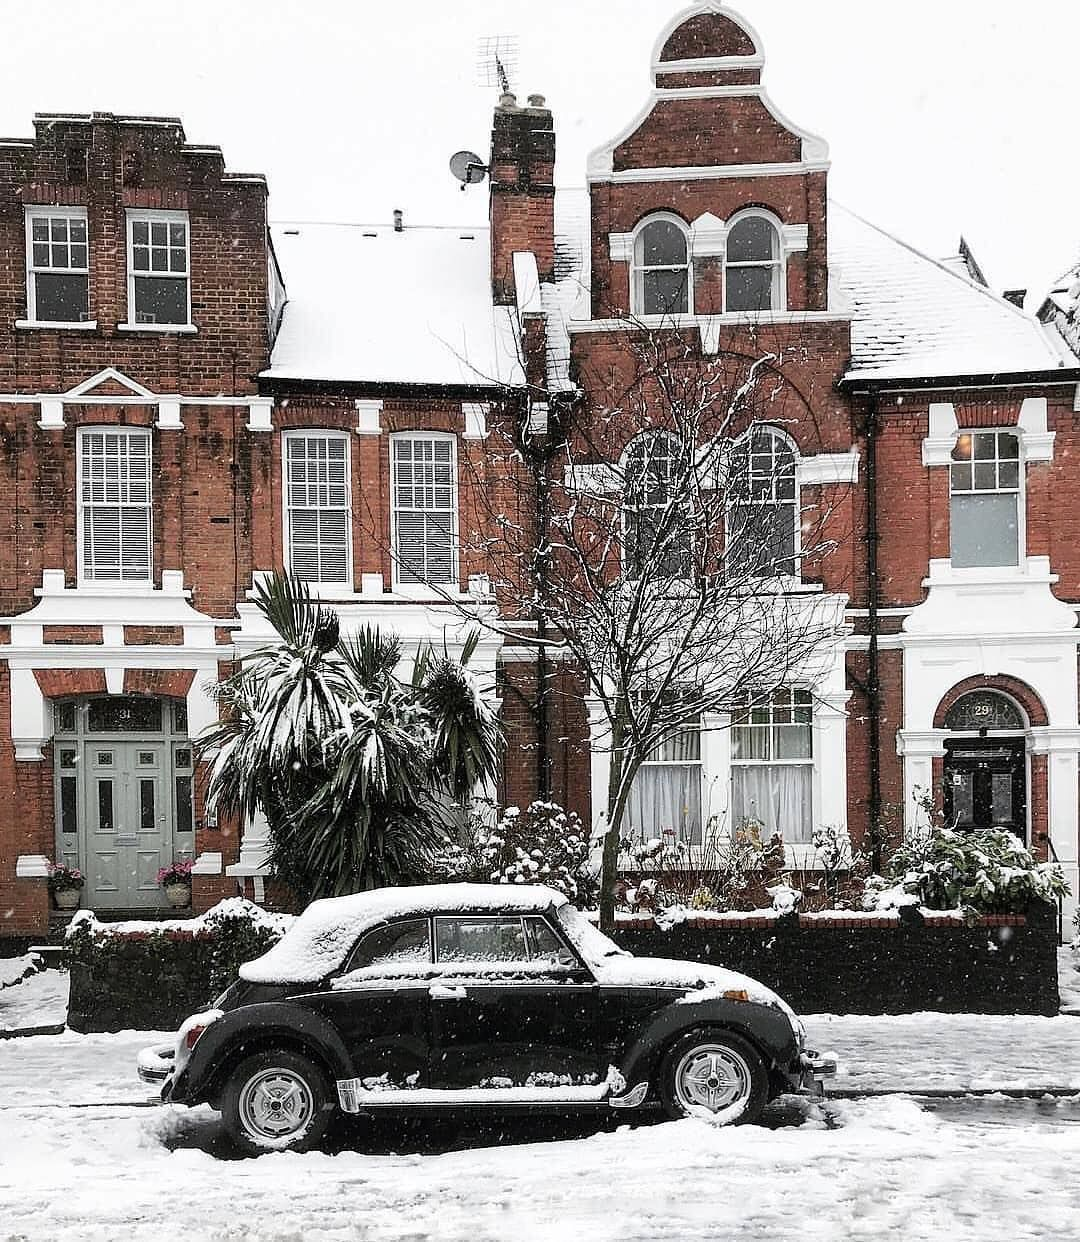 Pin By Gift Crouch End On Crouch End 3 London Architecture Architecture Rustic Winter